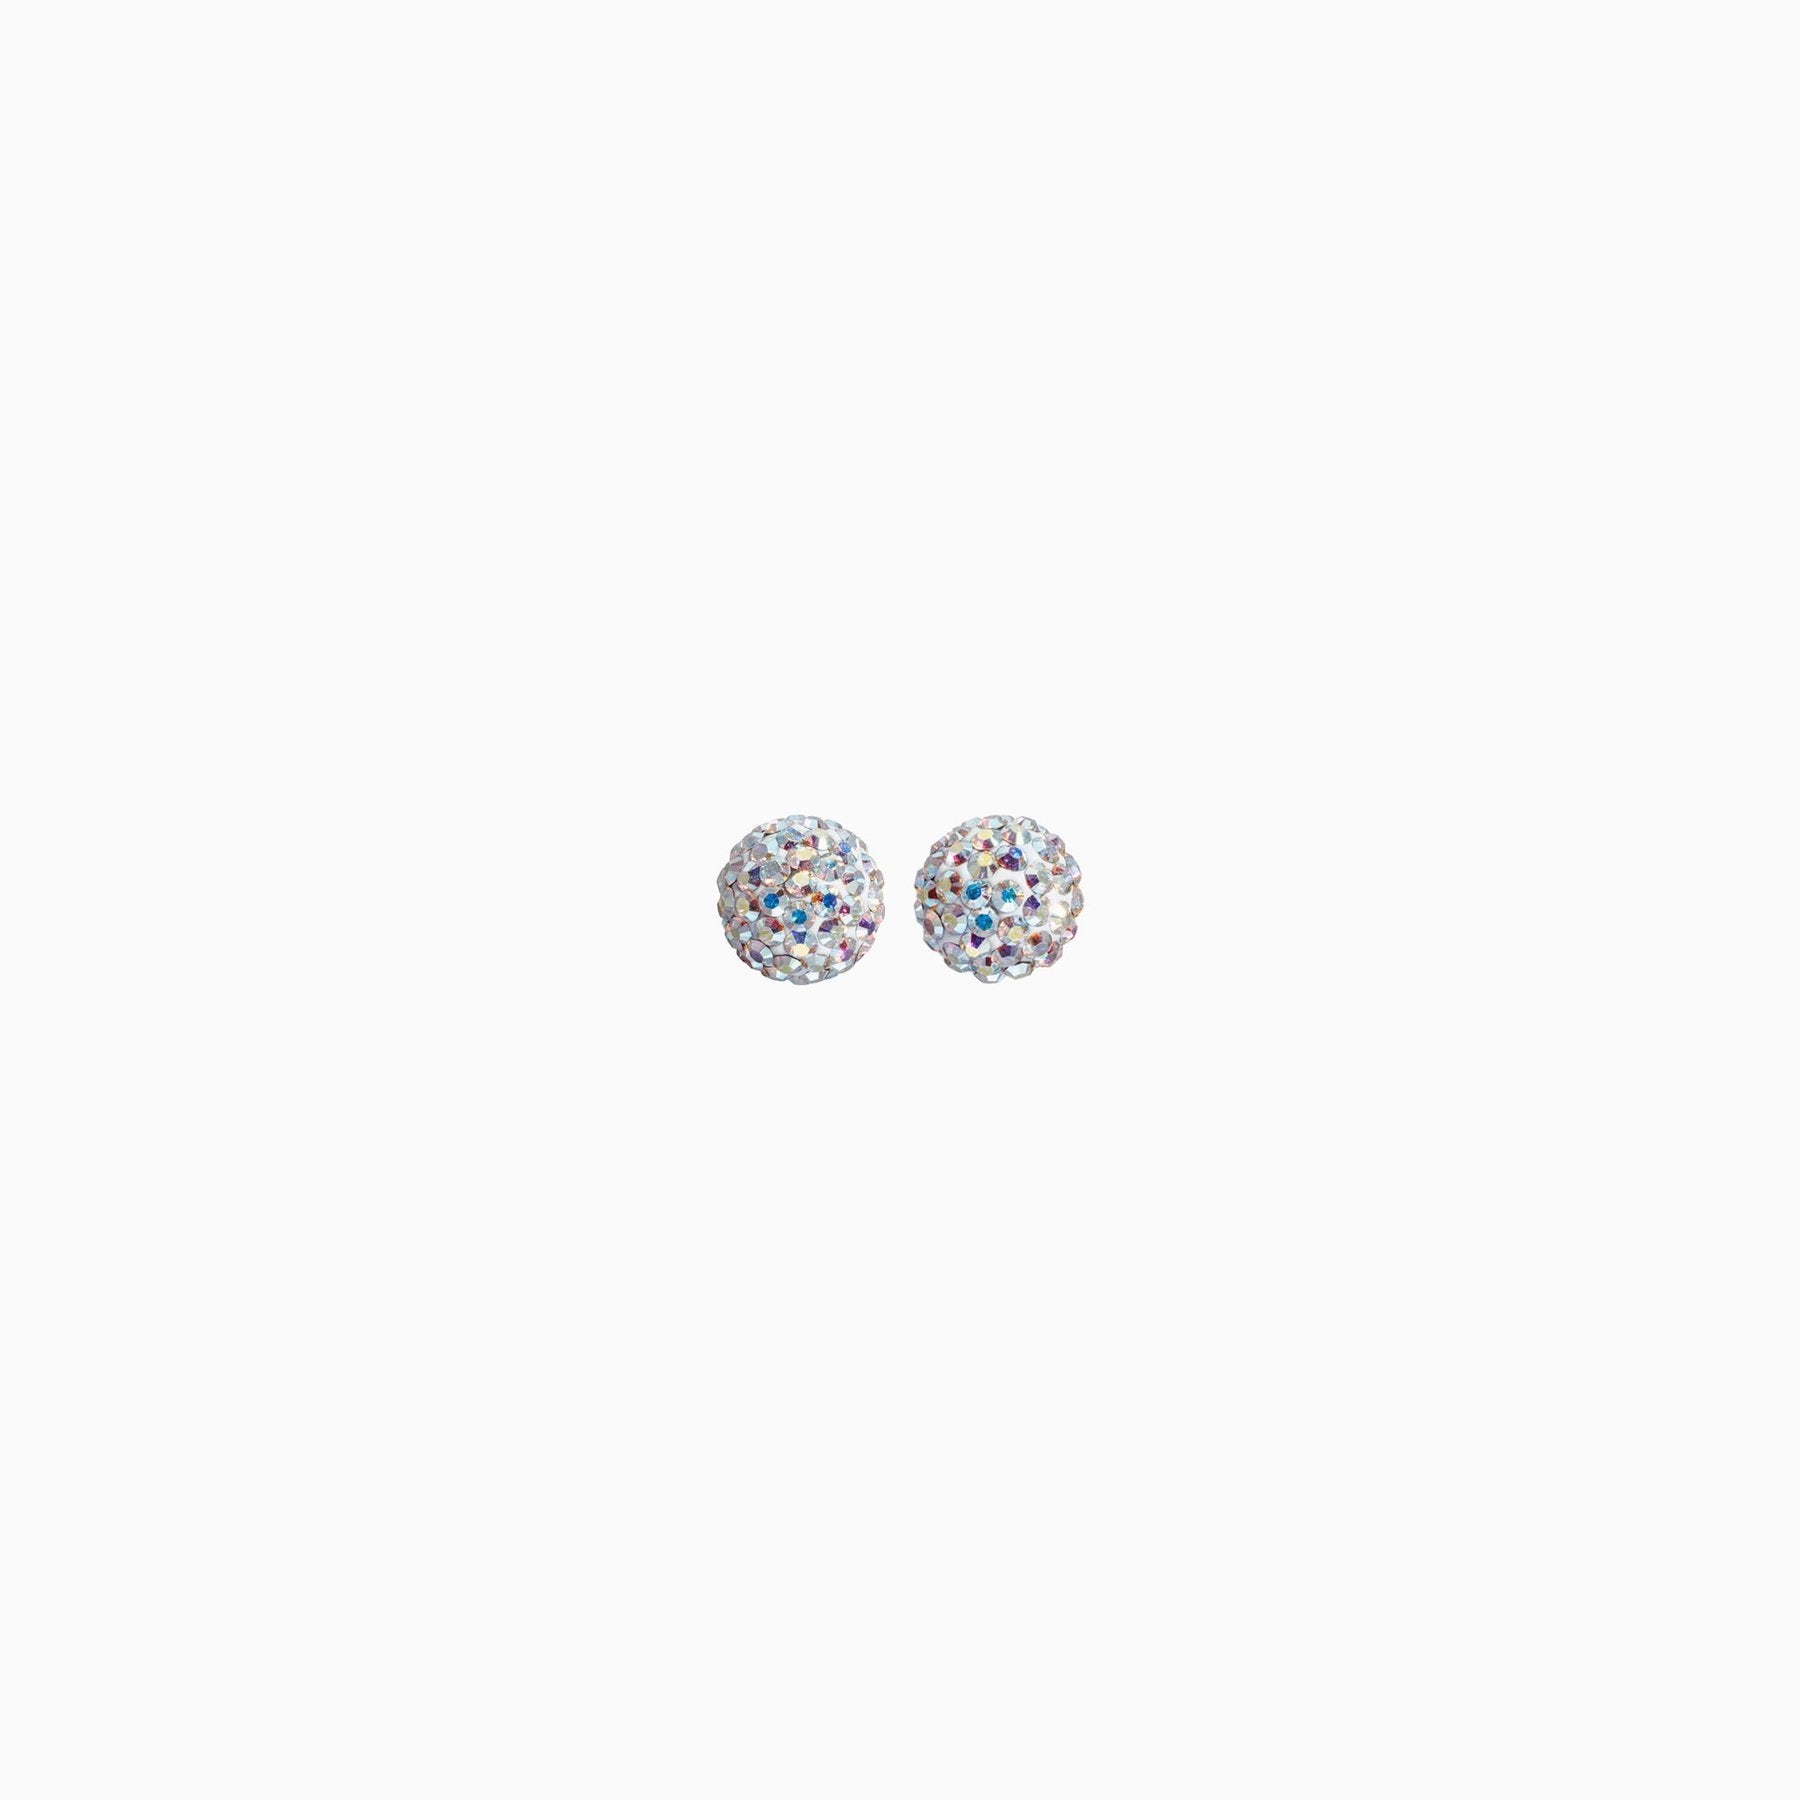 H&B Sparkle Ball™ Stud Earrings - 6mm Aurora Borealis